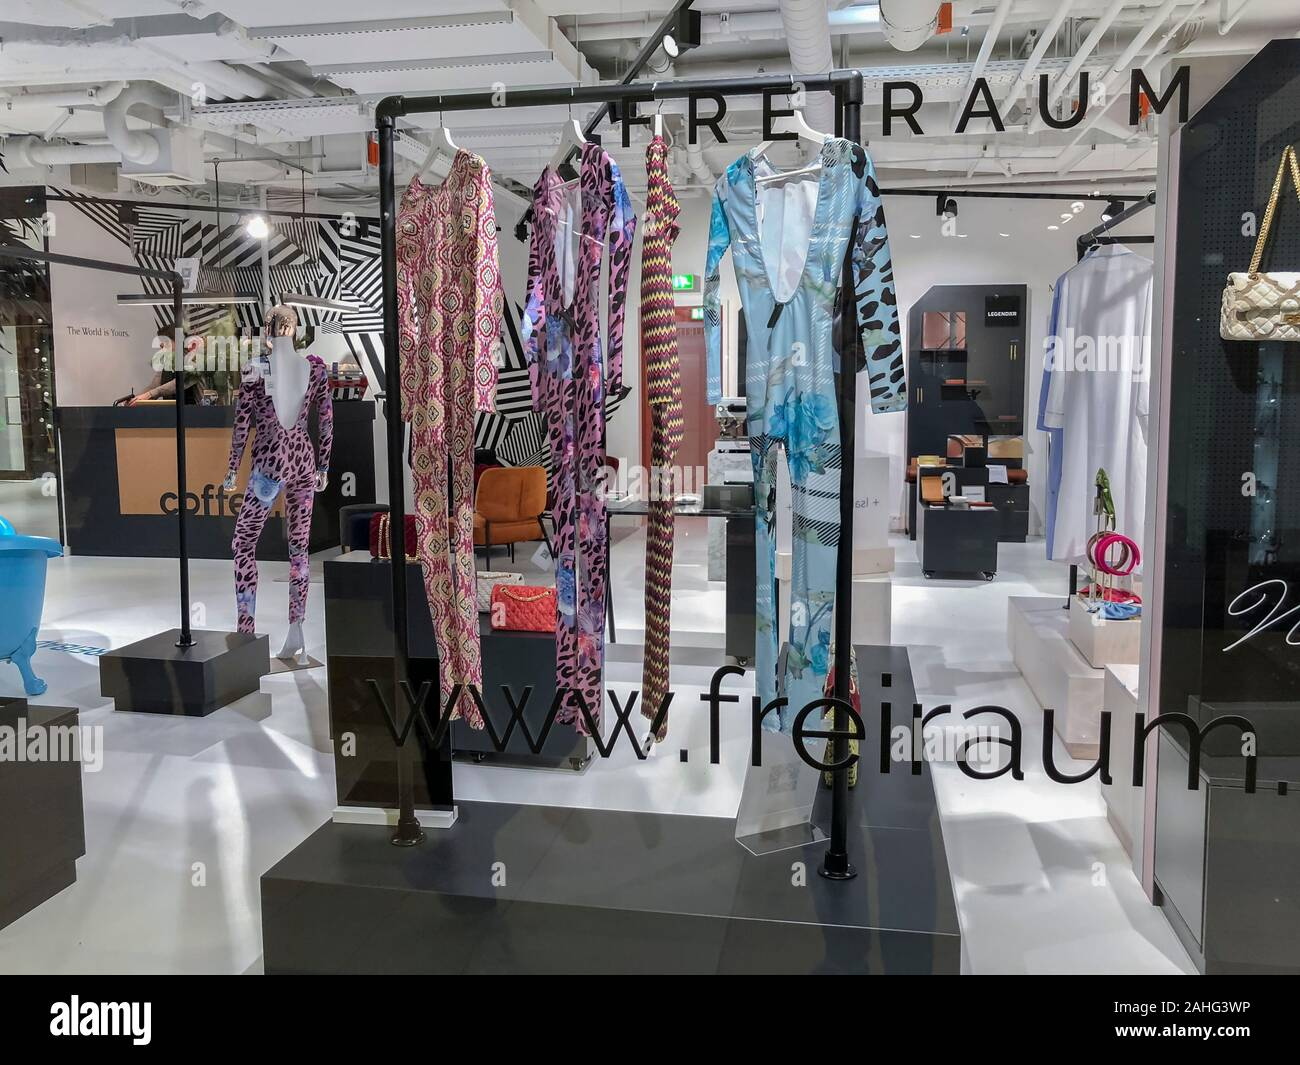 Berlin Germany Concept Store Front Freiraum Local Fashion Designer Hop Window In Modern Shopping Center Quartier 205 Friedrichstadt Stock Photo Alamy